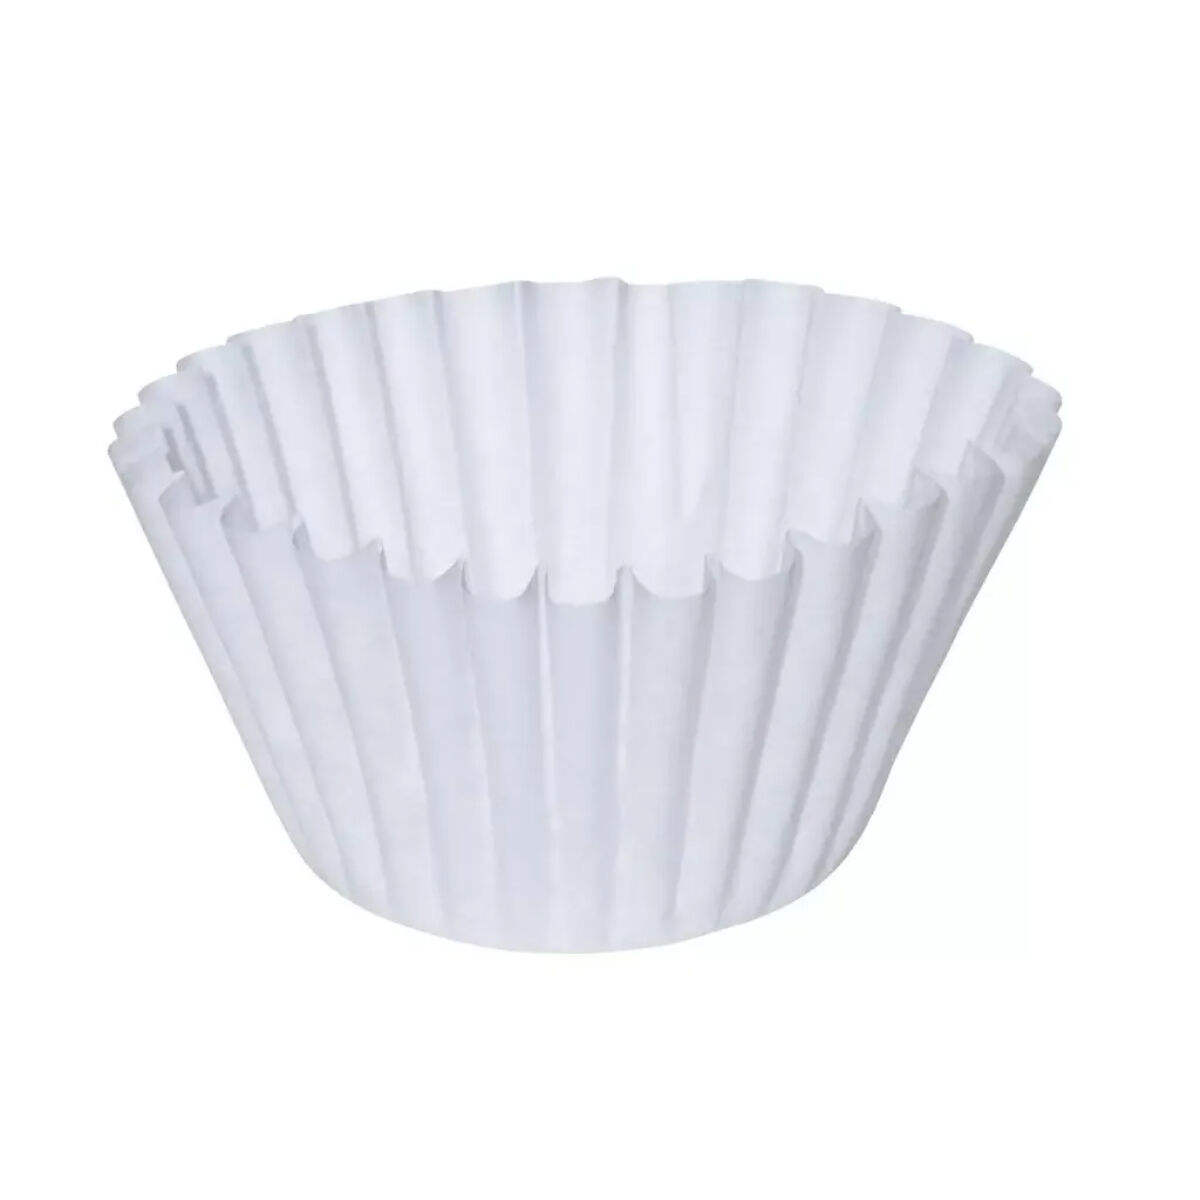 Japanese paper Coffee Filter for Drip coffee